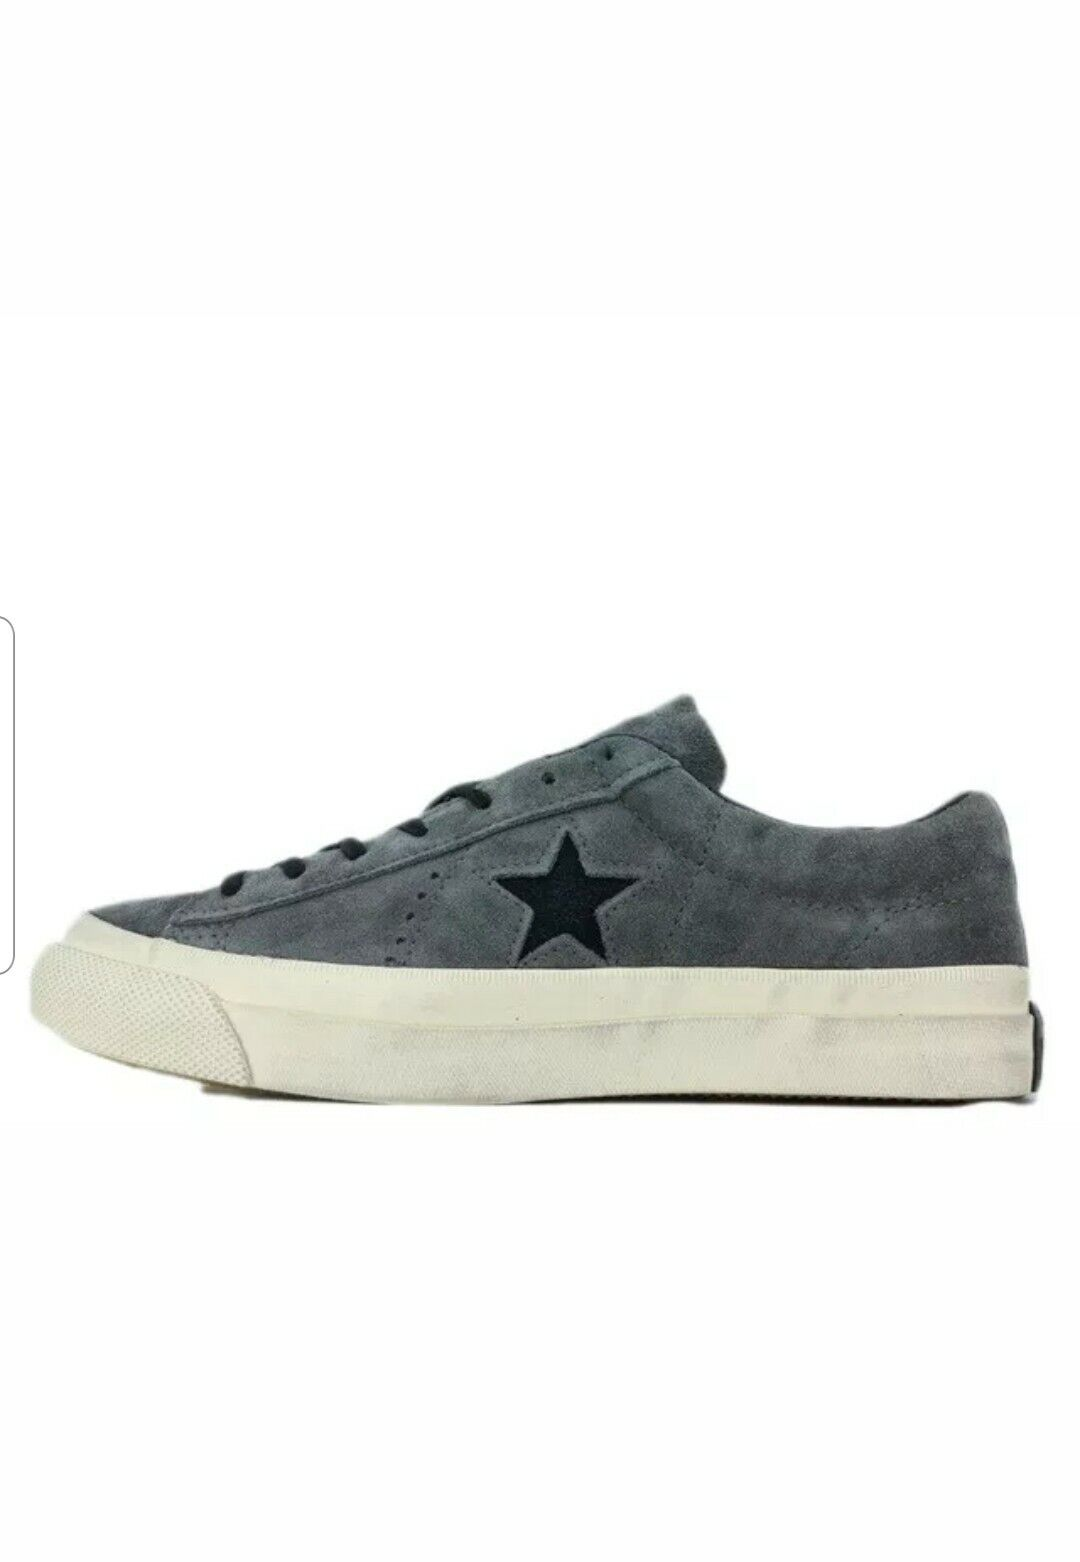 One Star Player Ox Suede Olive Grey Men